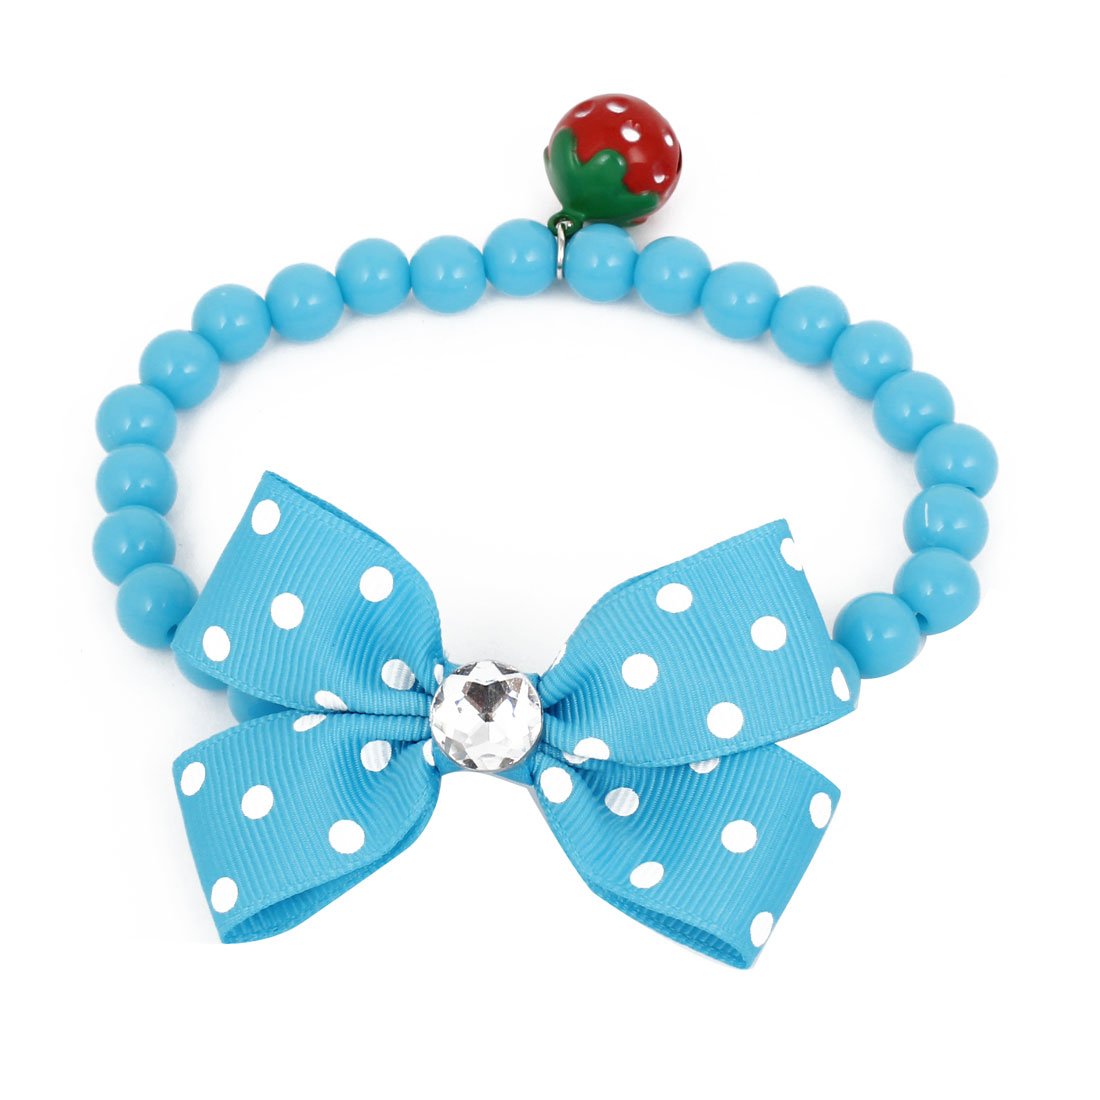 Metal Bell Pendant Bowtie Accent Pet Dog Plastic Round Beads Collar Necklace Blue S